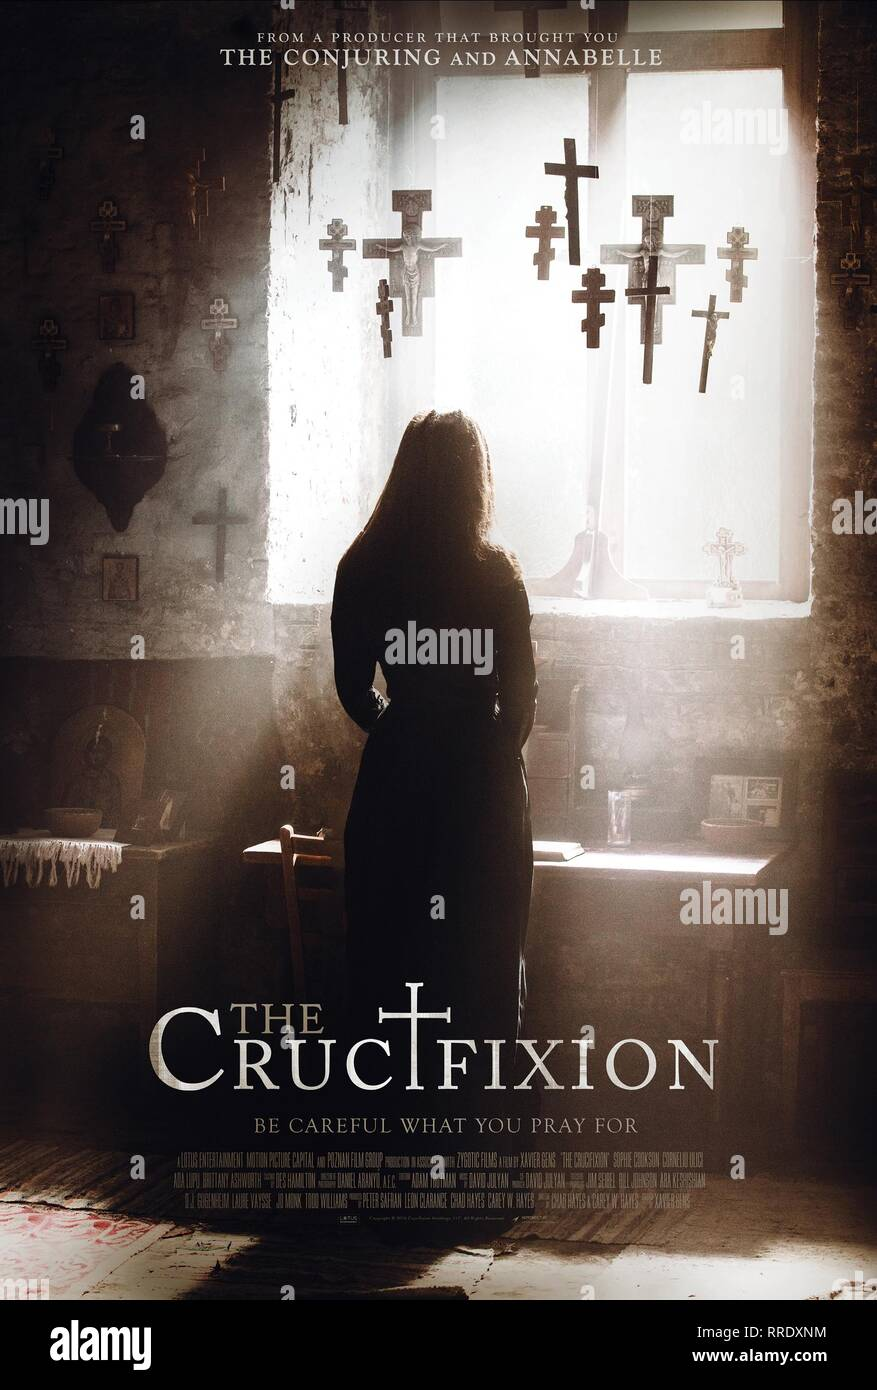 THE CRUCIFIXION, MOVIE POSTER, 2017 - Stock Image